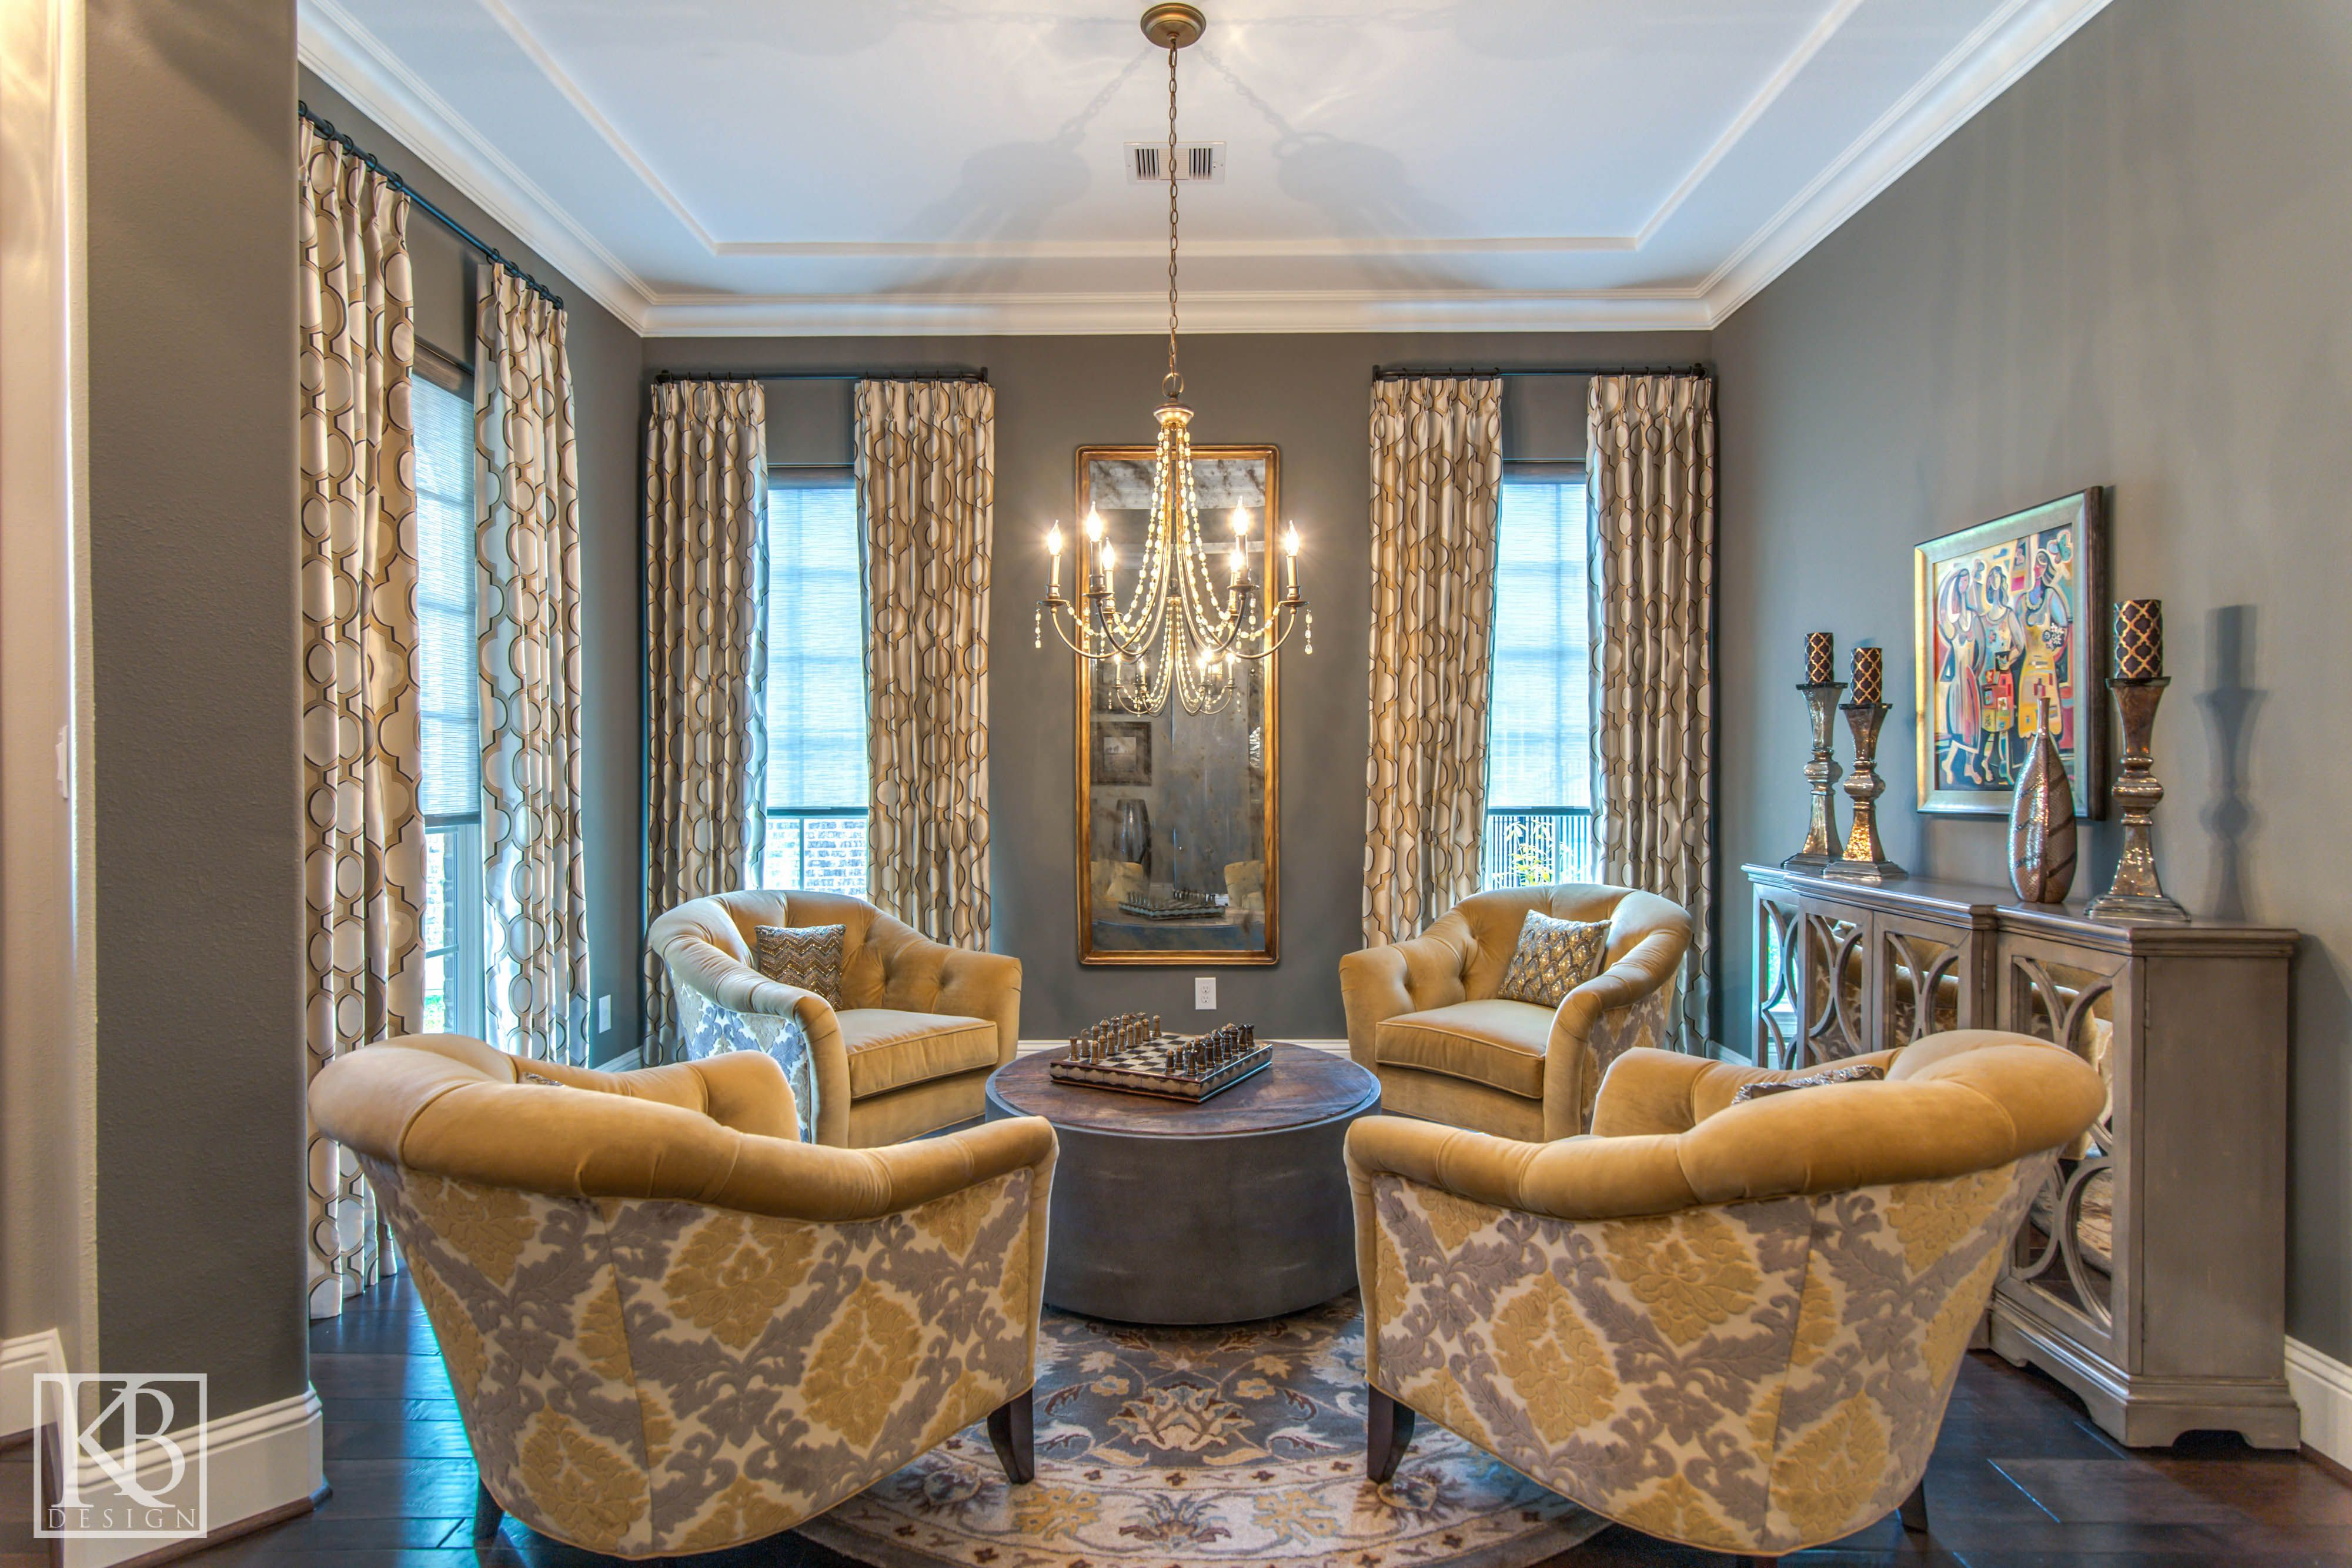 Gathering Spaces 101 Here We Custom Upholstered Four Club Chairs And Centered A Large Round Coffee Table Between The Chand Guest Room Colors Home Room Colors [ 2667 x 4000 Pixel ]